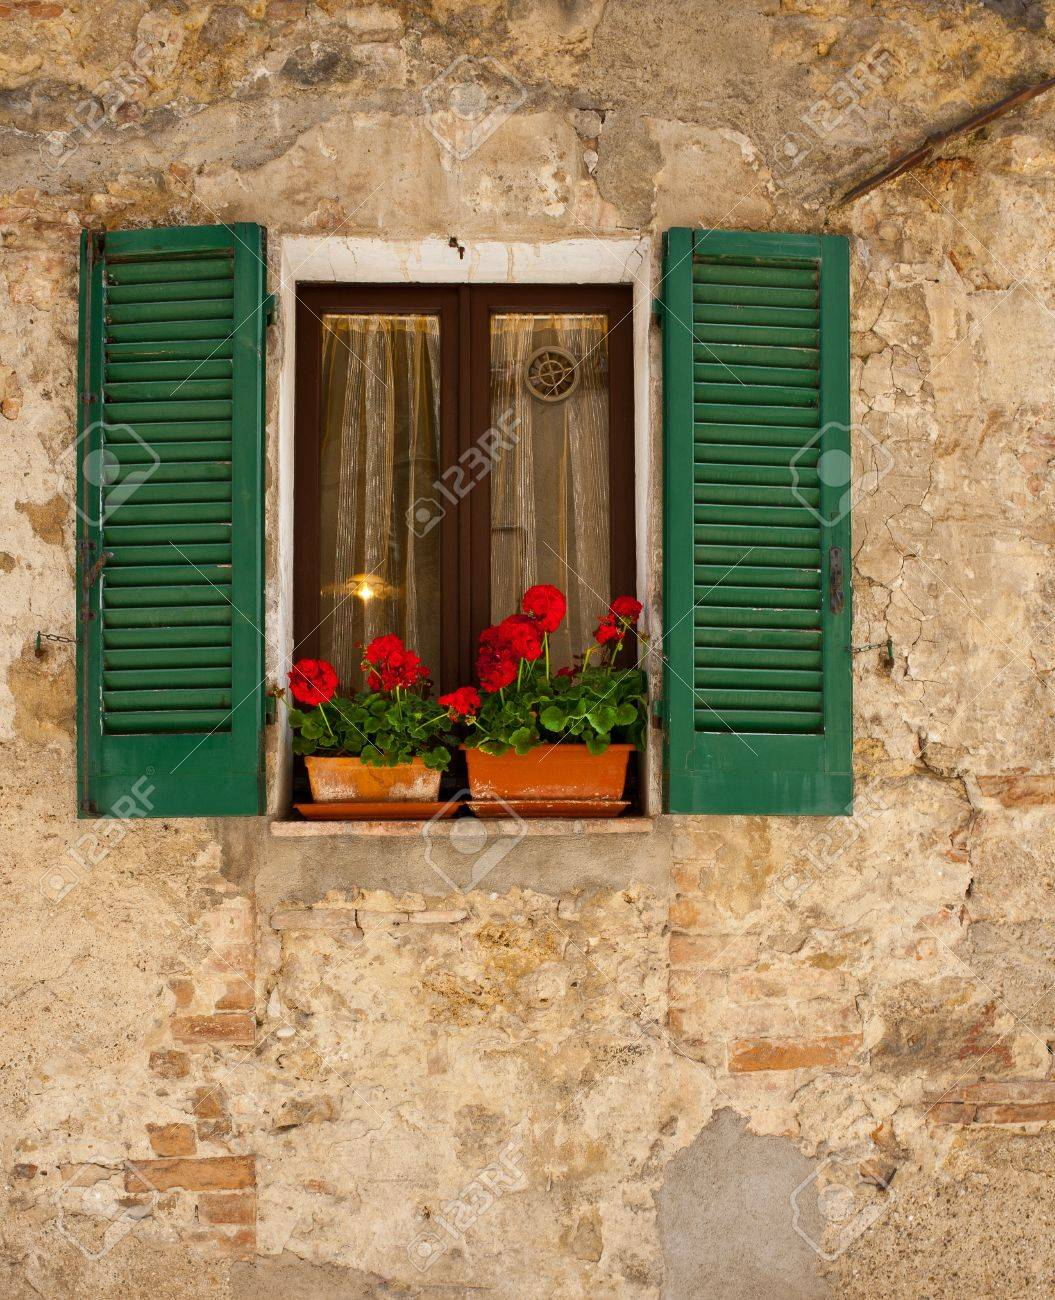 Window on the Facade of the Old Italian Home Stock Photo - 16990393